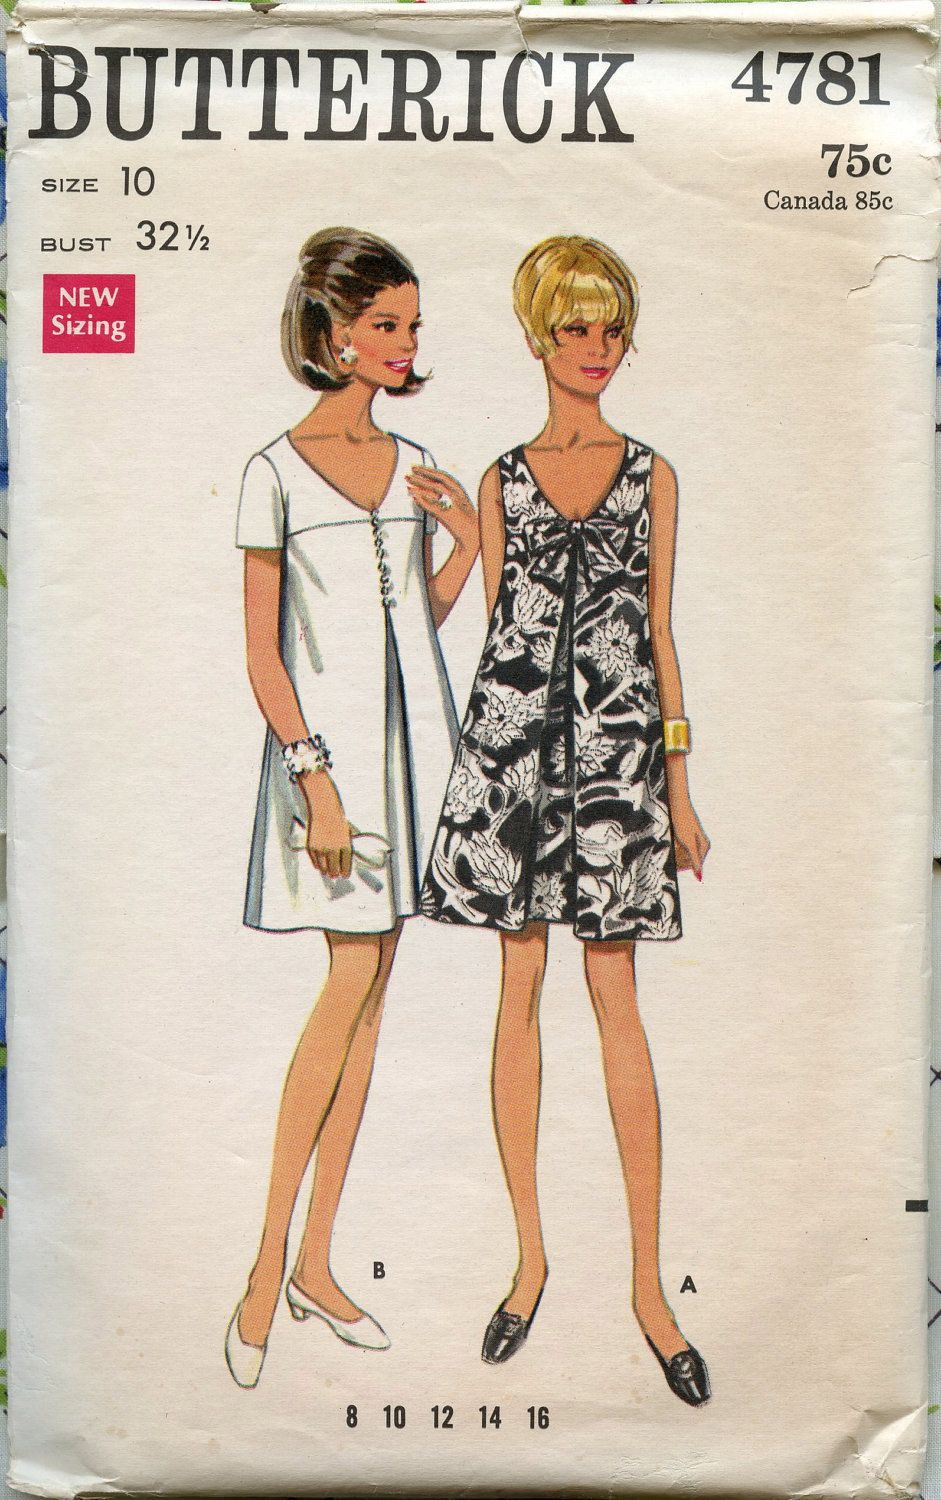 s butterick vintage sewing pattern mod misses semi fitted wore this in lime to my first job interview in 1968 and got the job